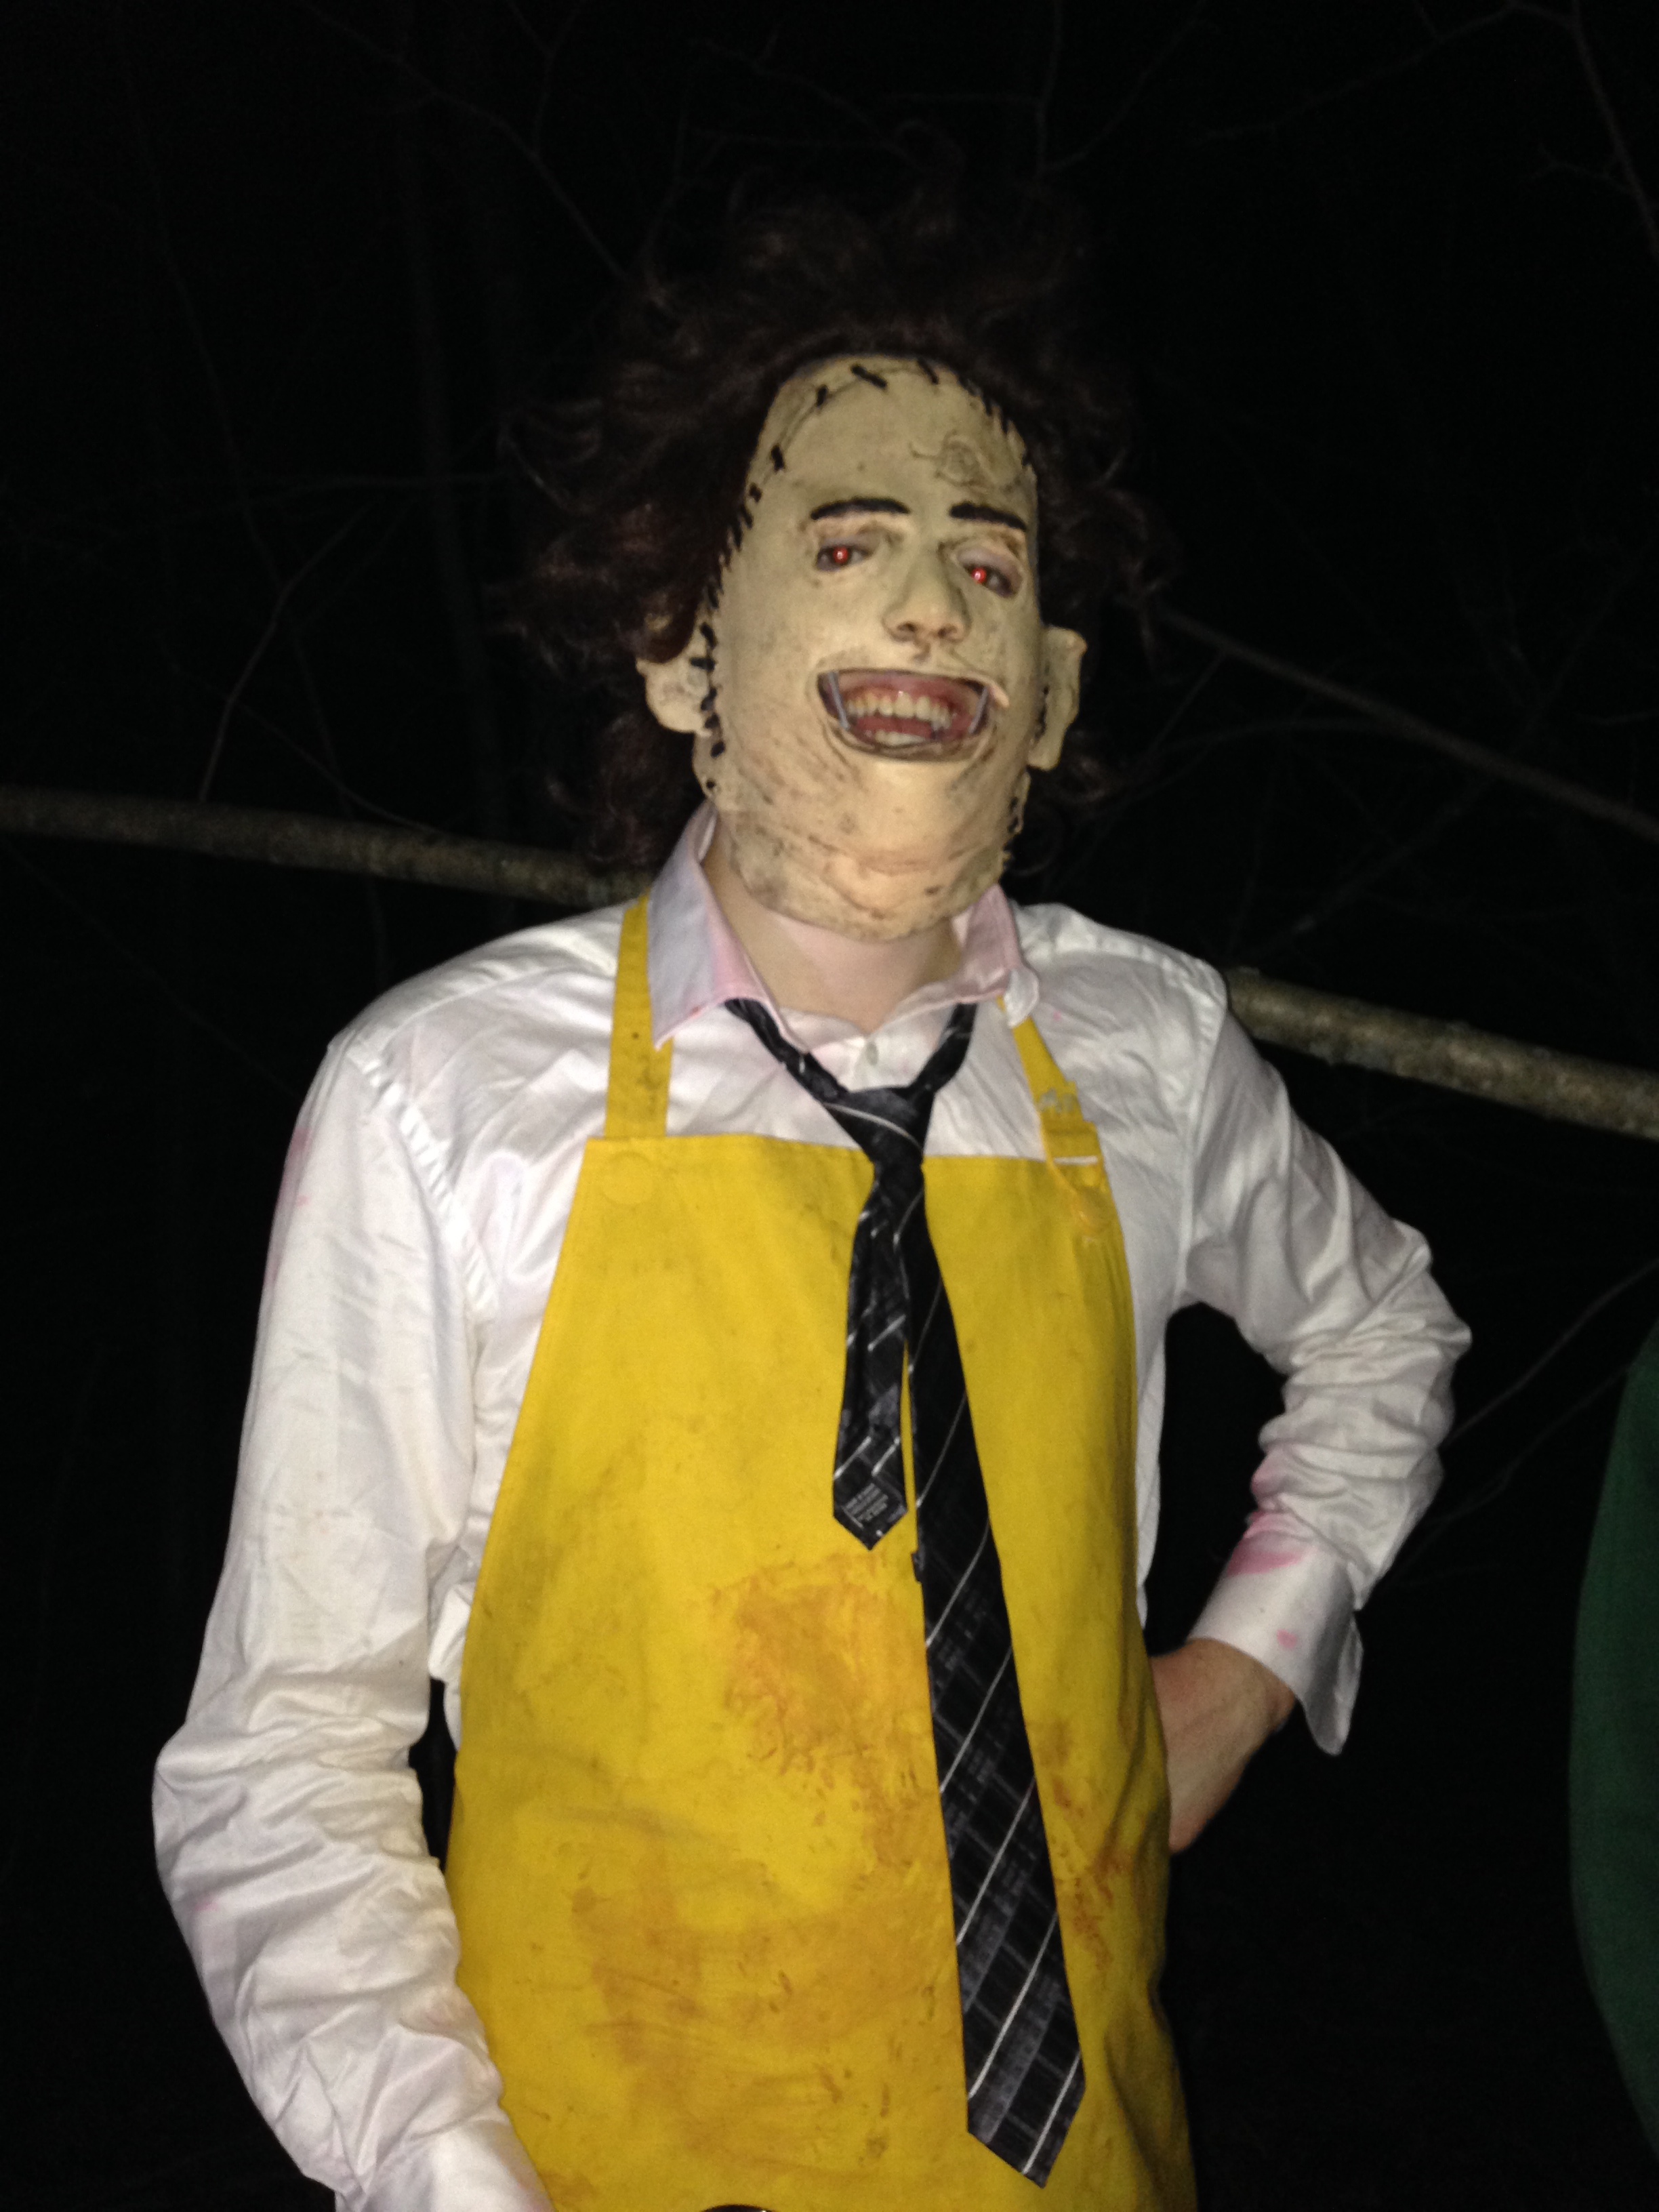 Graeme Balfour as Leatherface